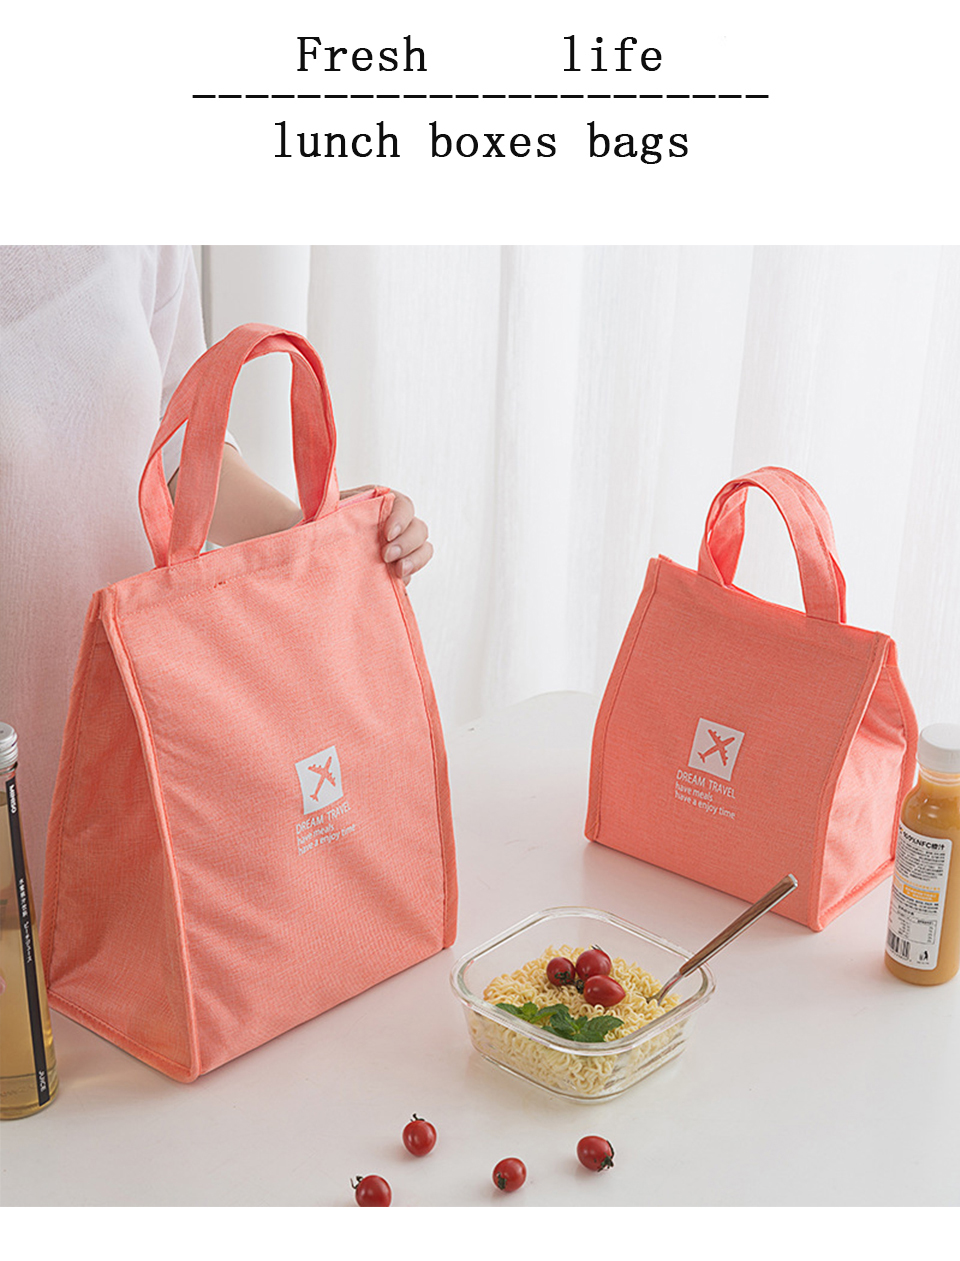 Portable Insulated Canvas lunch Bag Thermal Picnic Lunch Bags for Women kids Men Cooler Lunch Box Bag